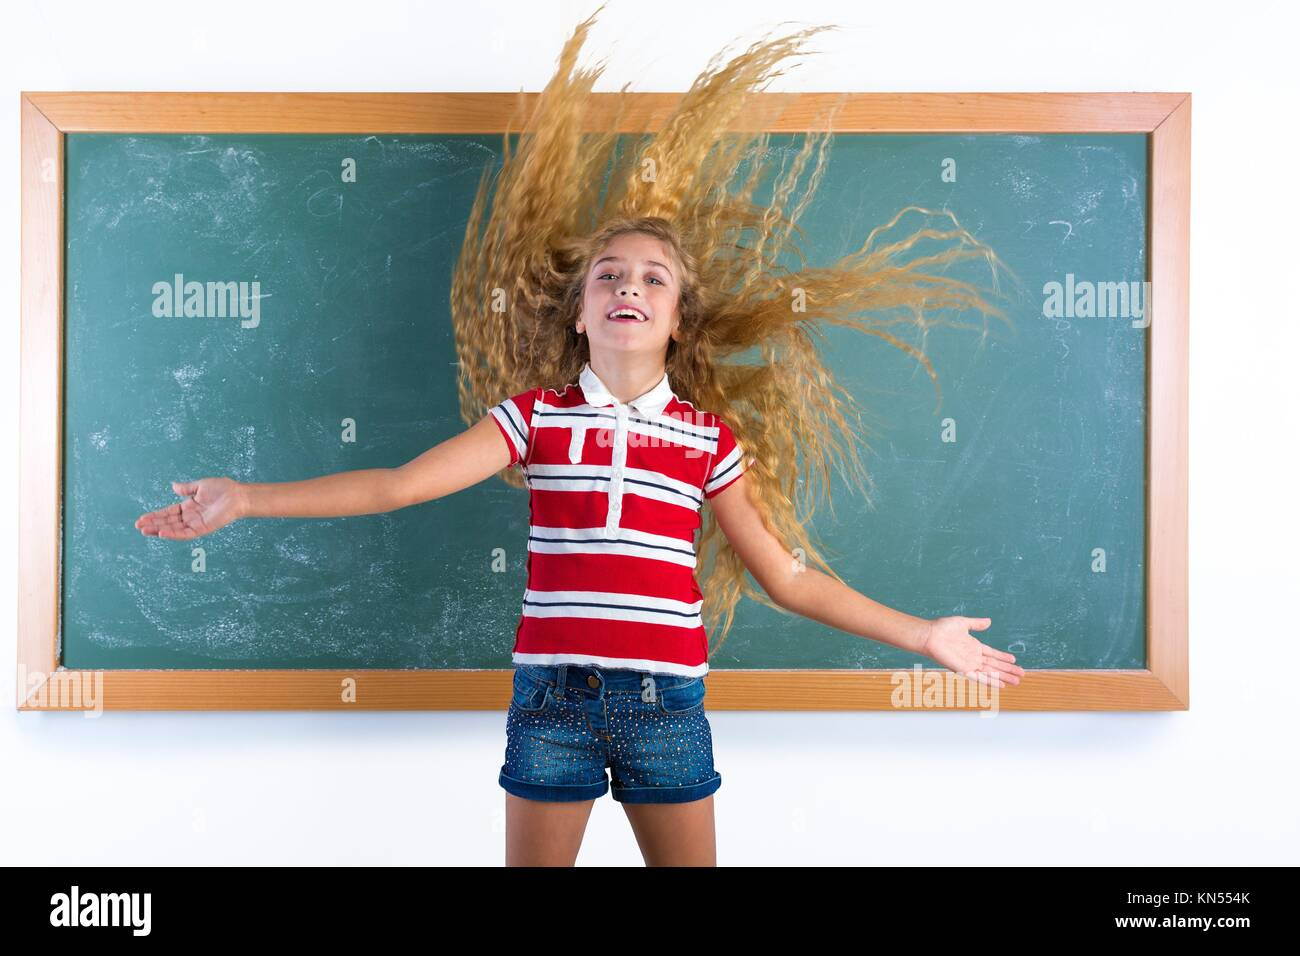 funny student girl flipping long blond hair at school classroom chalk board. - Stock Image